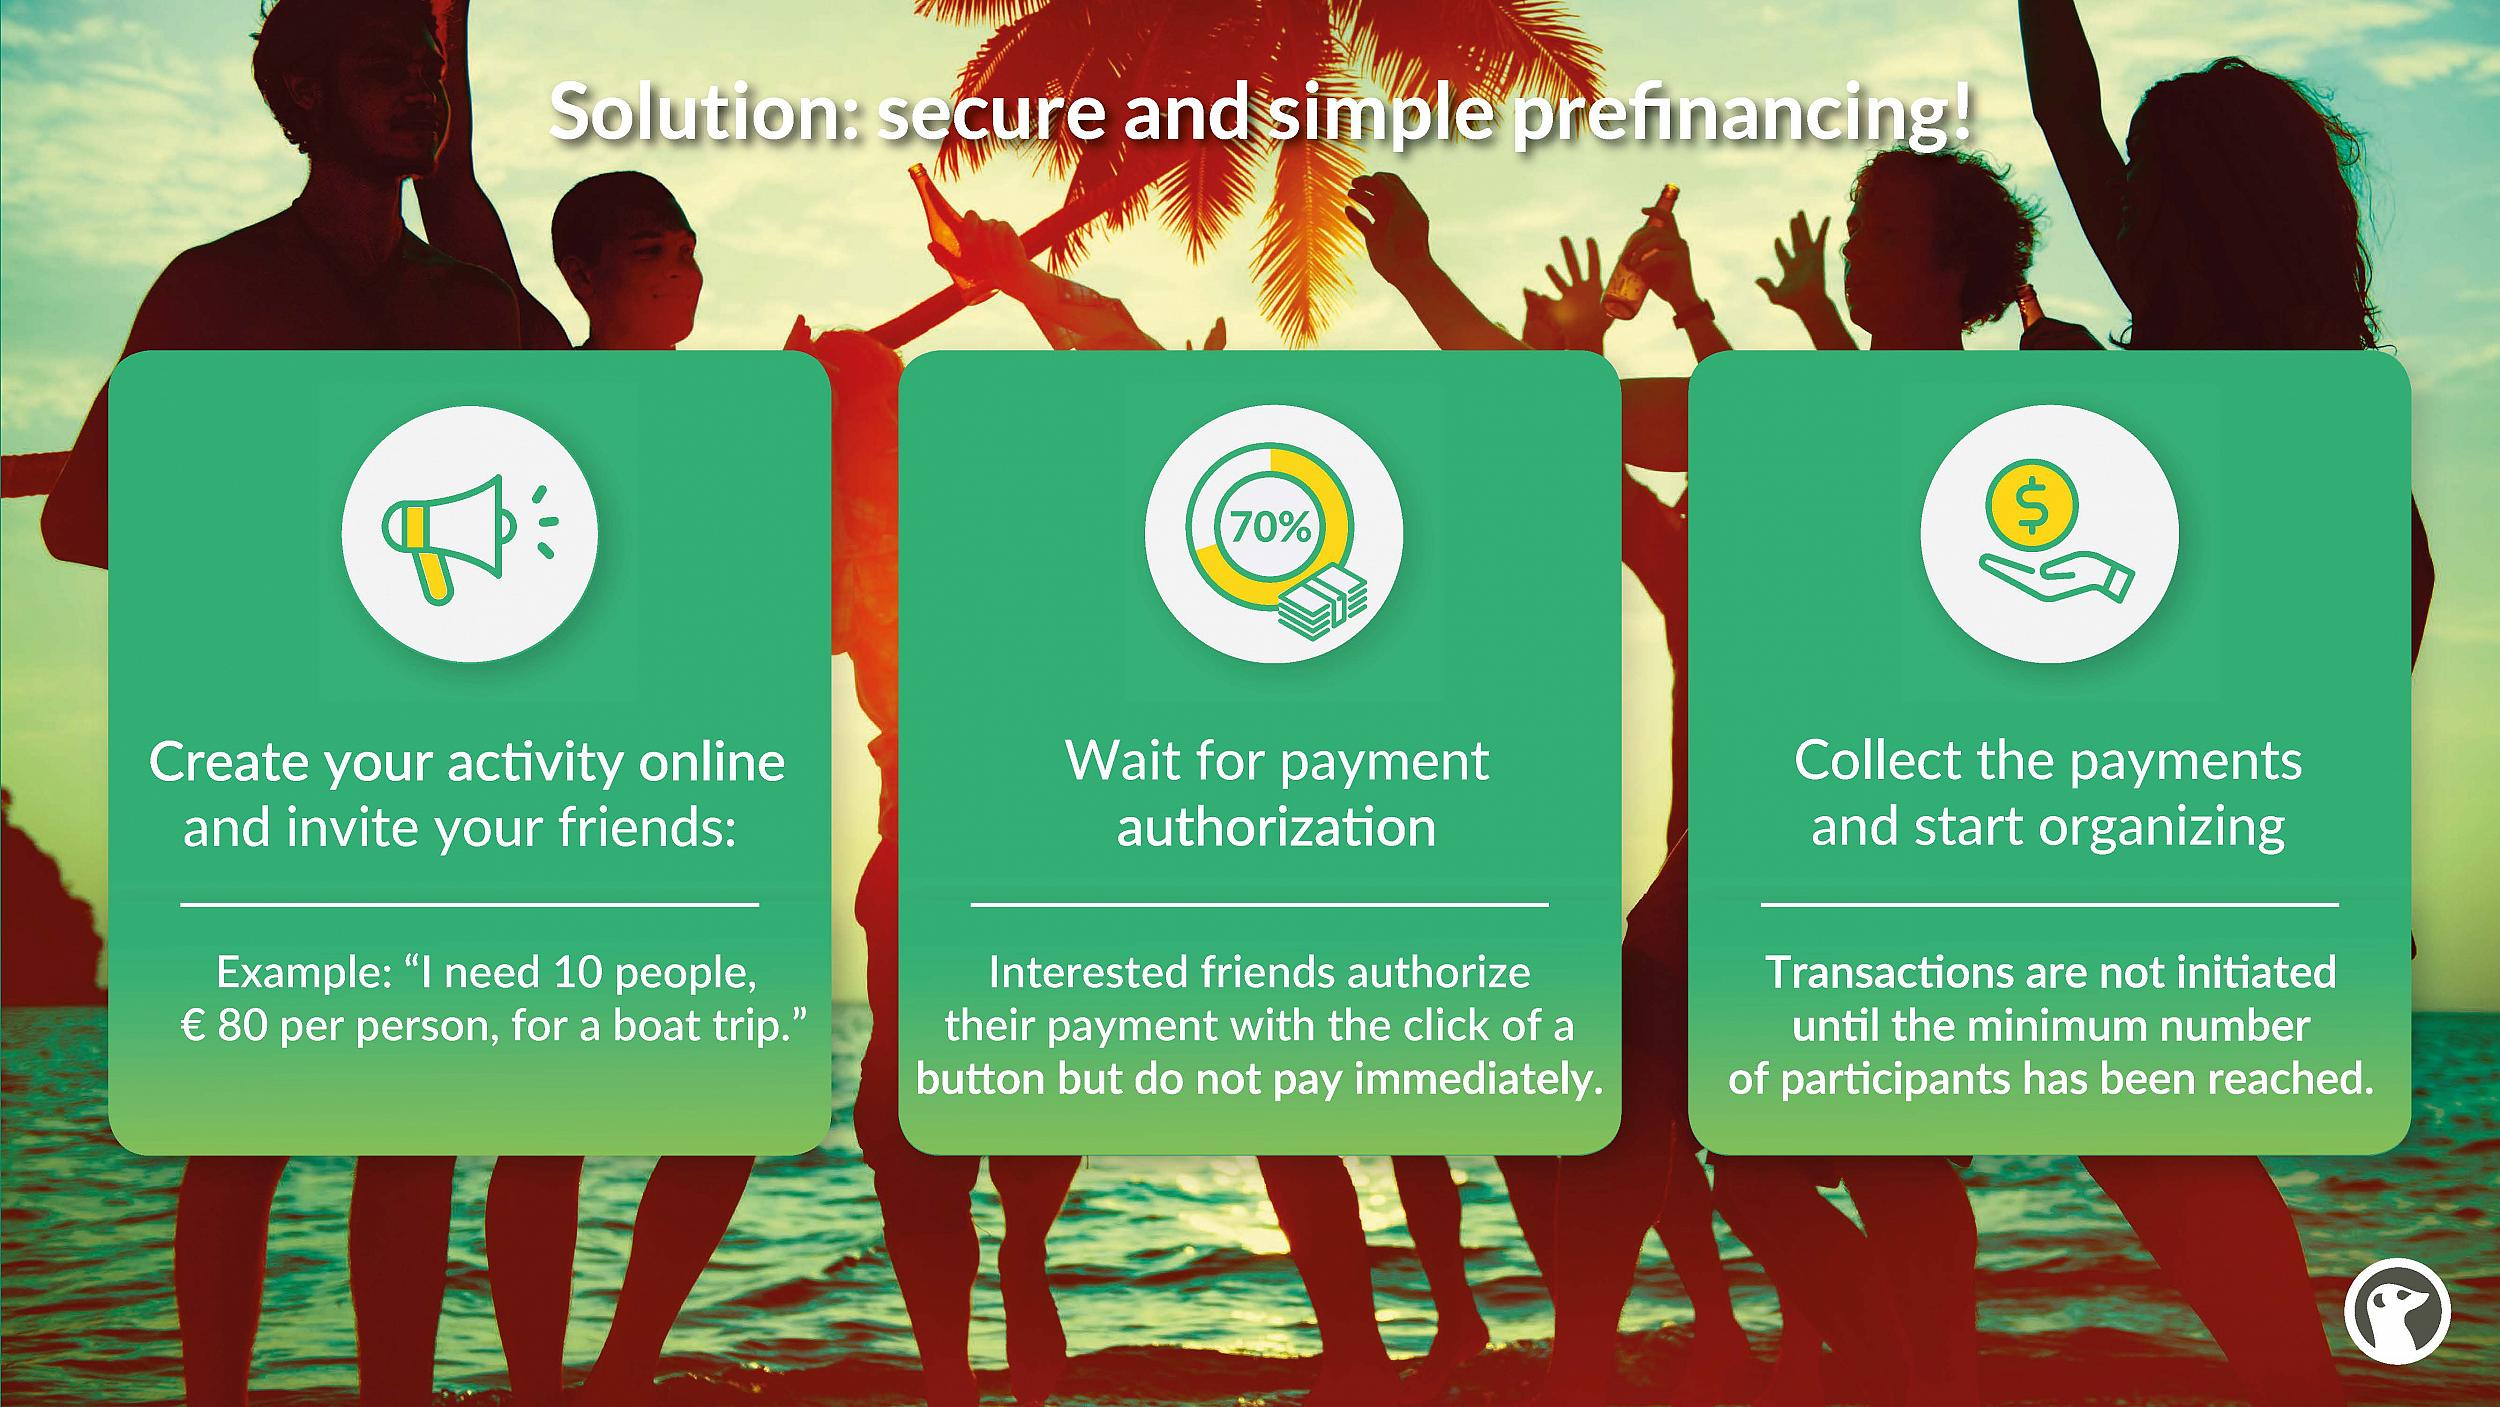 GroopDoo - secure and simple prefinancing